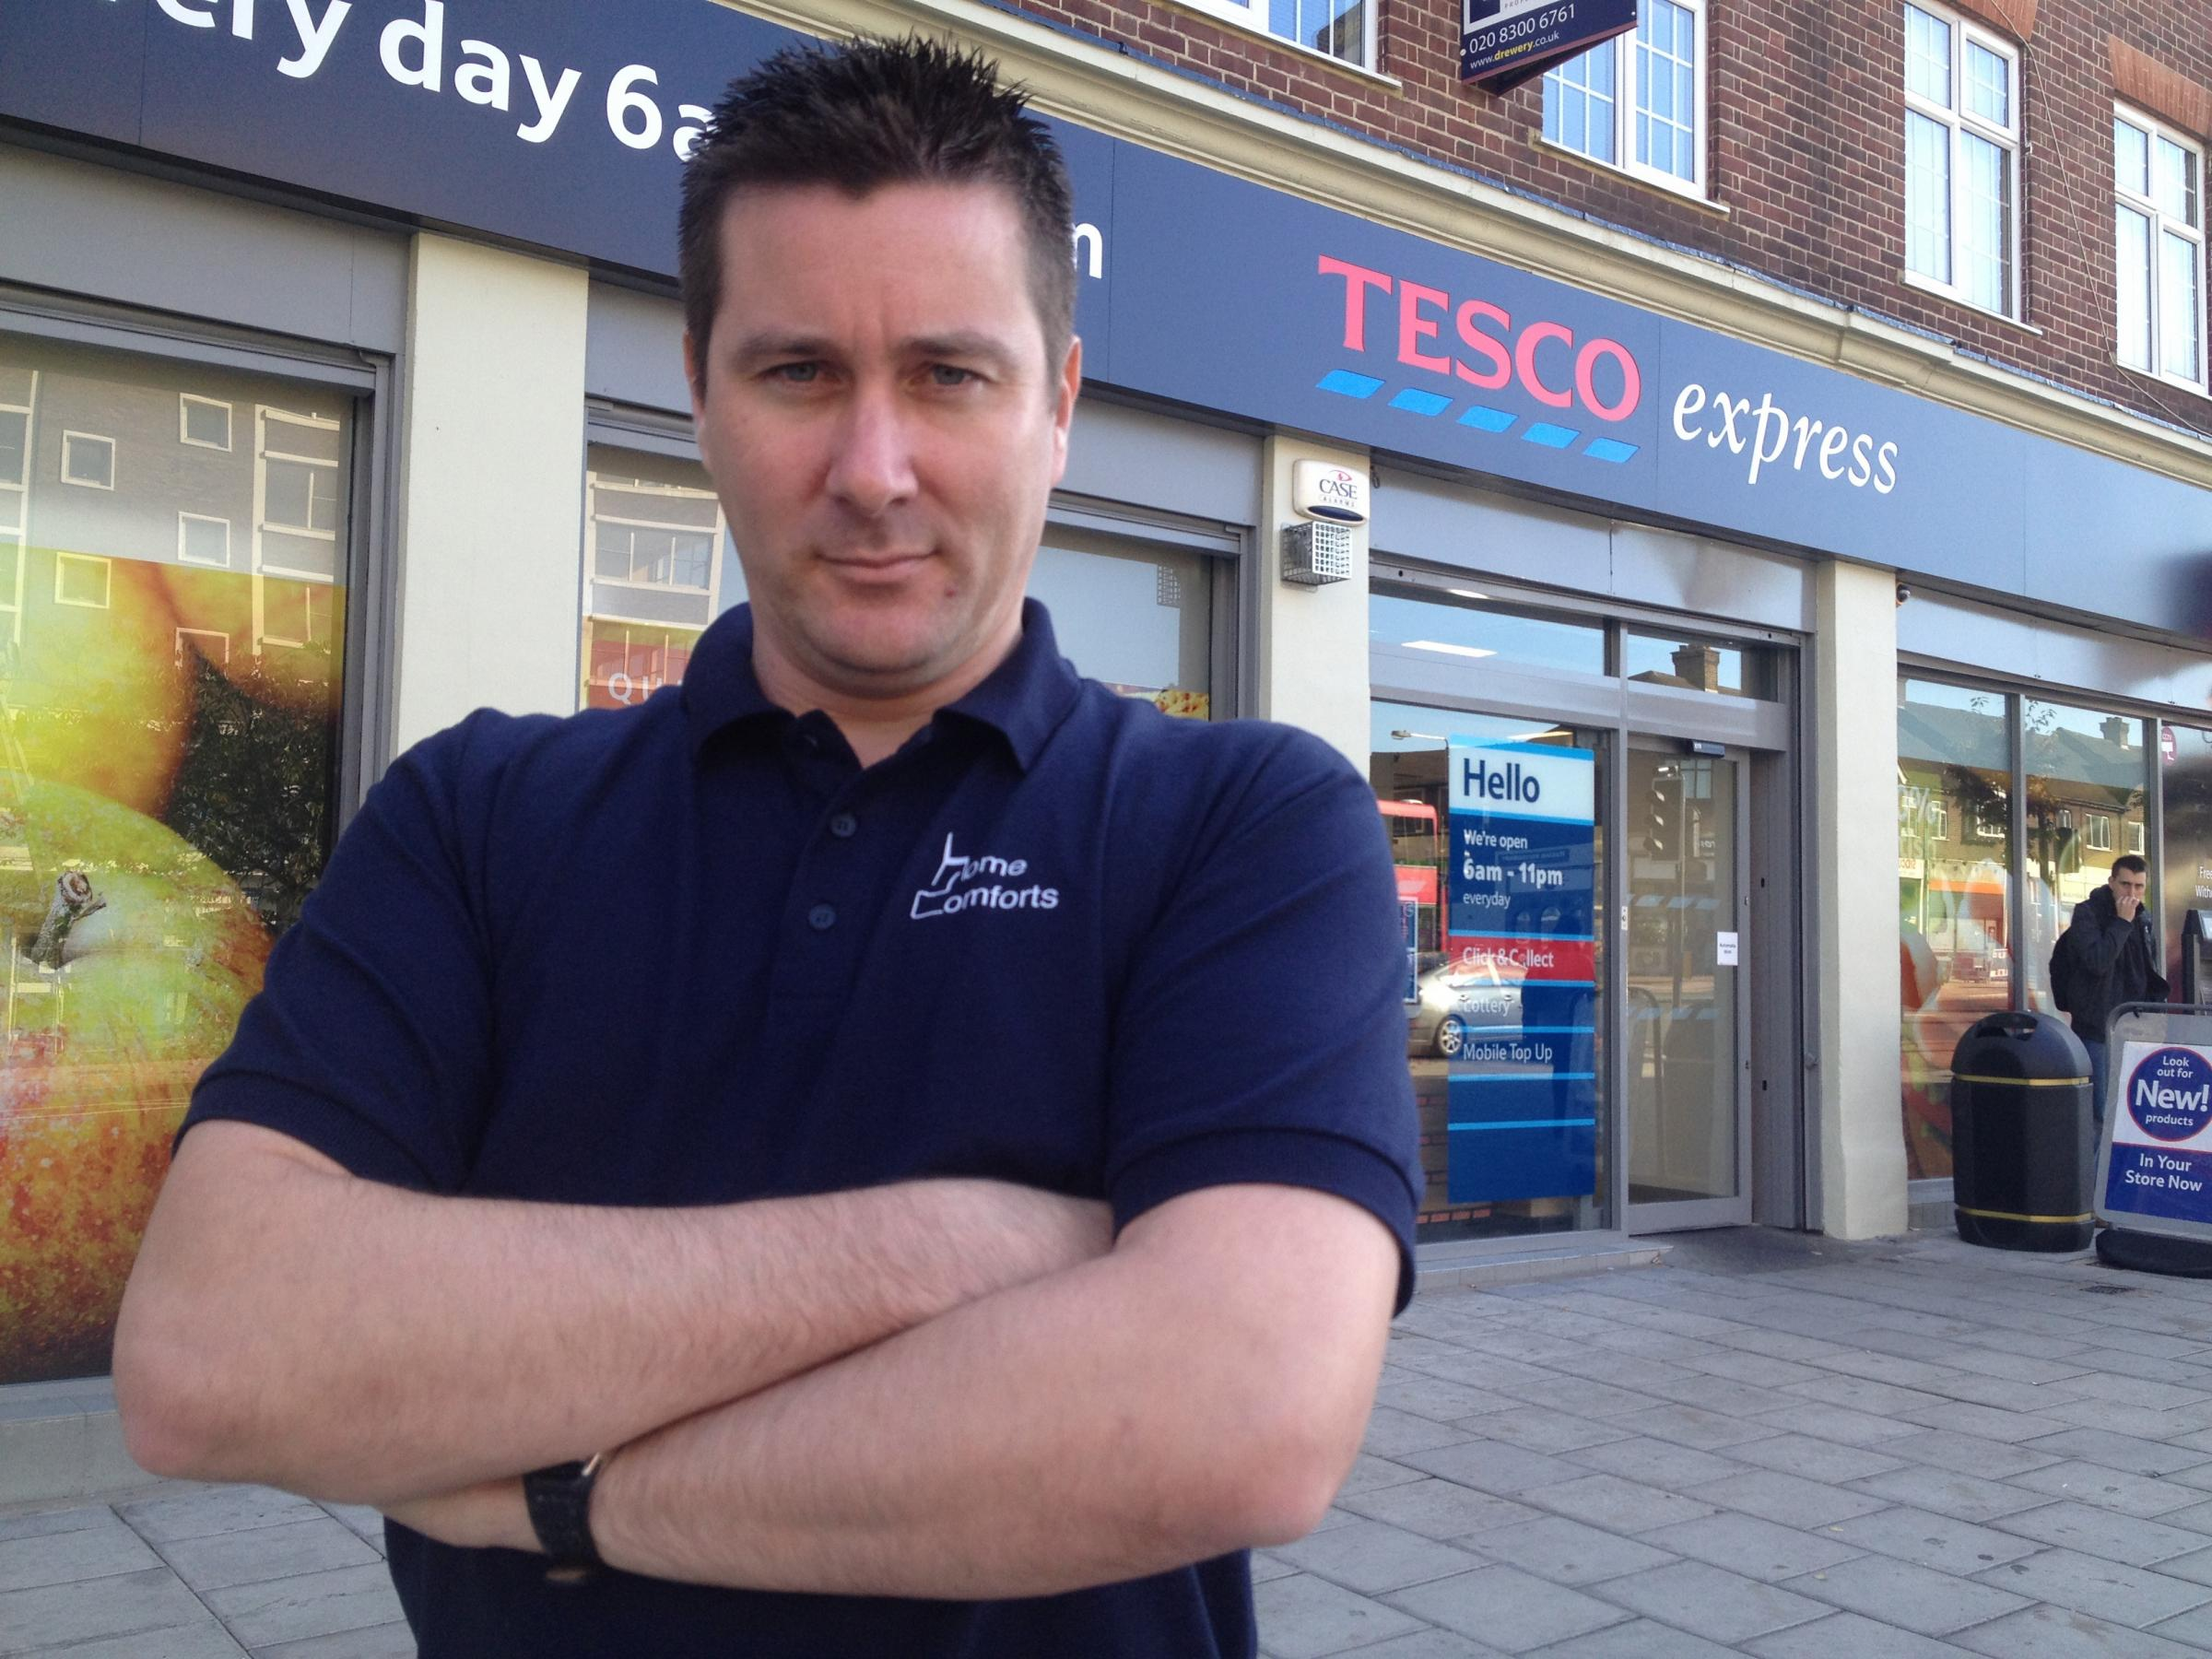 Needle 'found in bag of Sidcup Tesco potatoes'